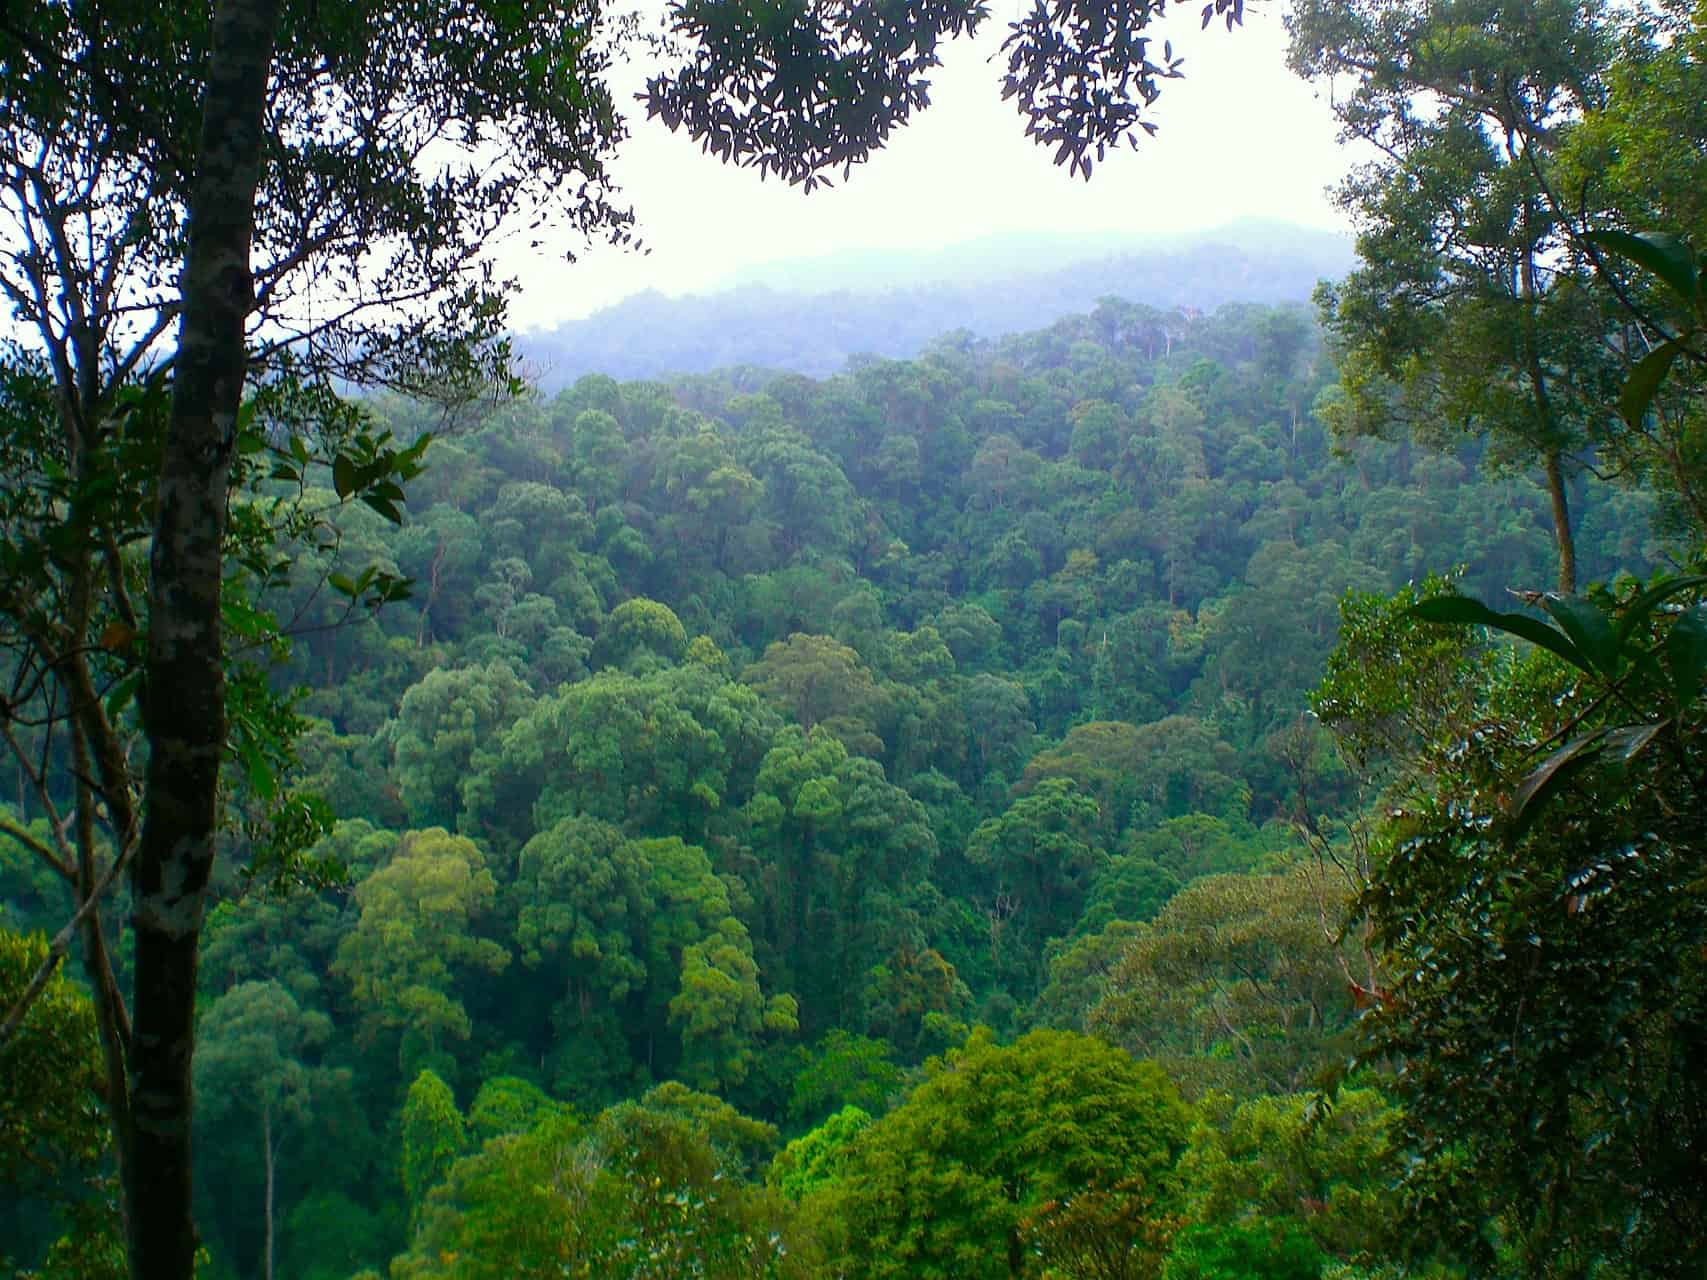 GUNUNG LEUSER NATIONALPARK - BUKIT LAWANG - HIGHLIGHT IN NORTHERN SUMATRA - SUMATRA ECOTRAVEL